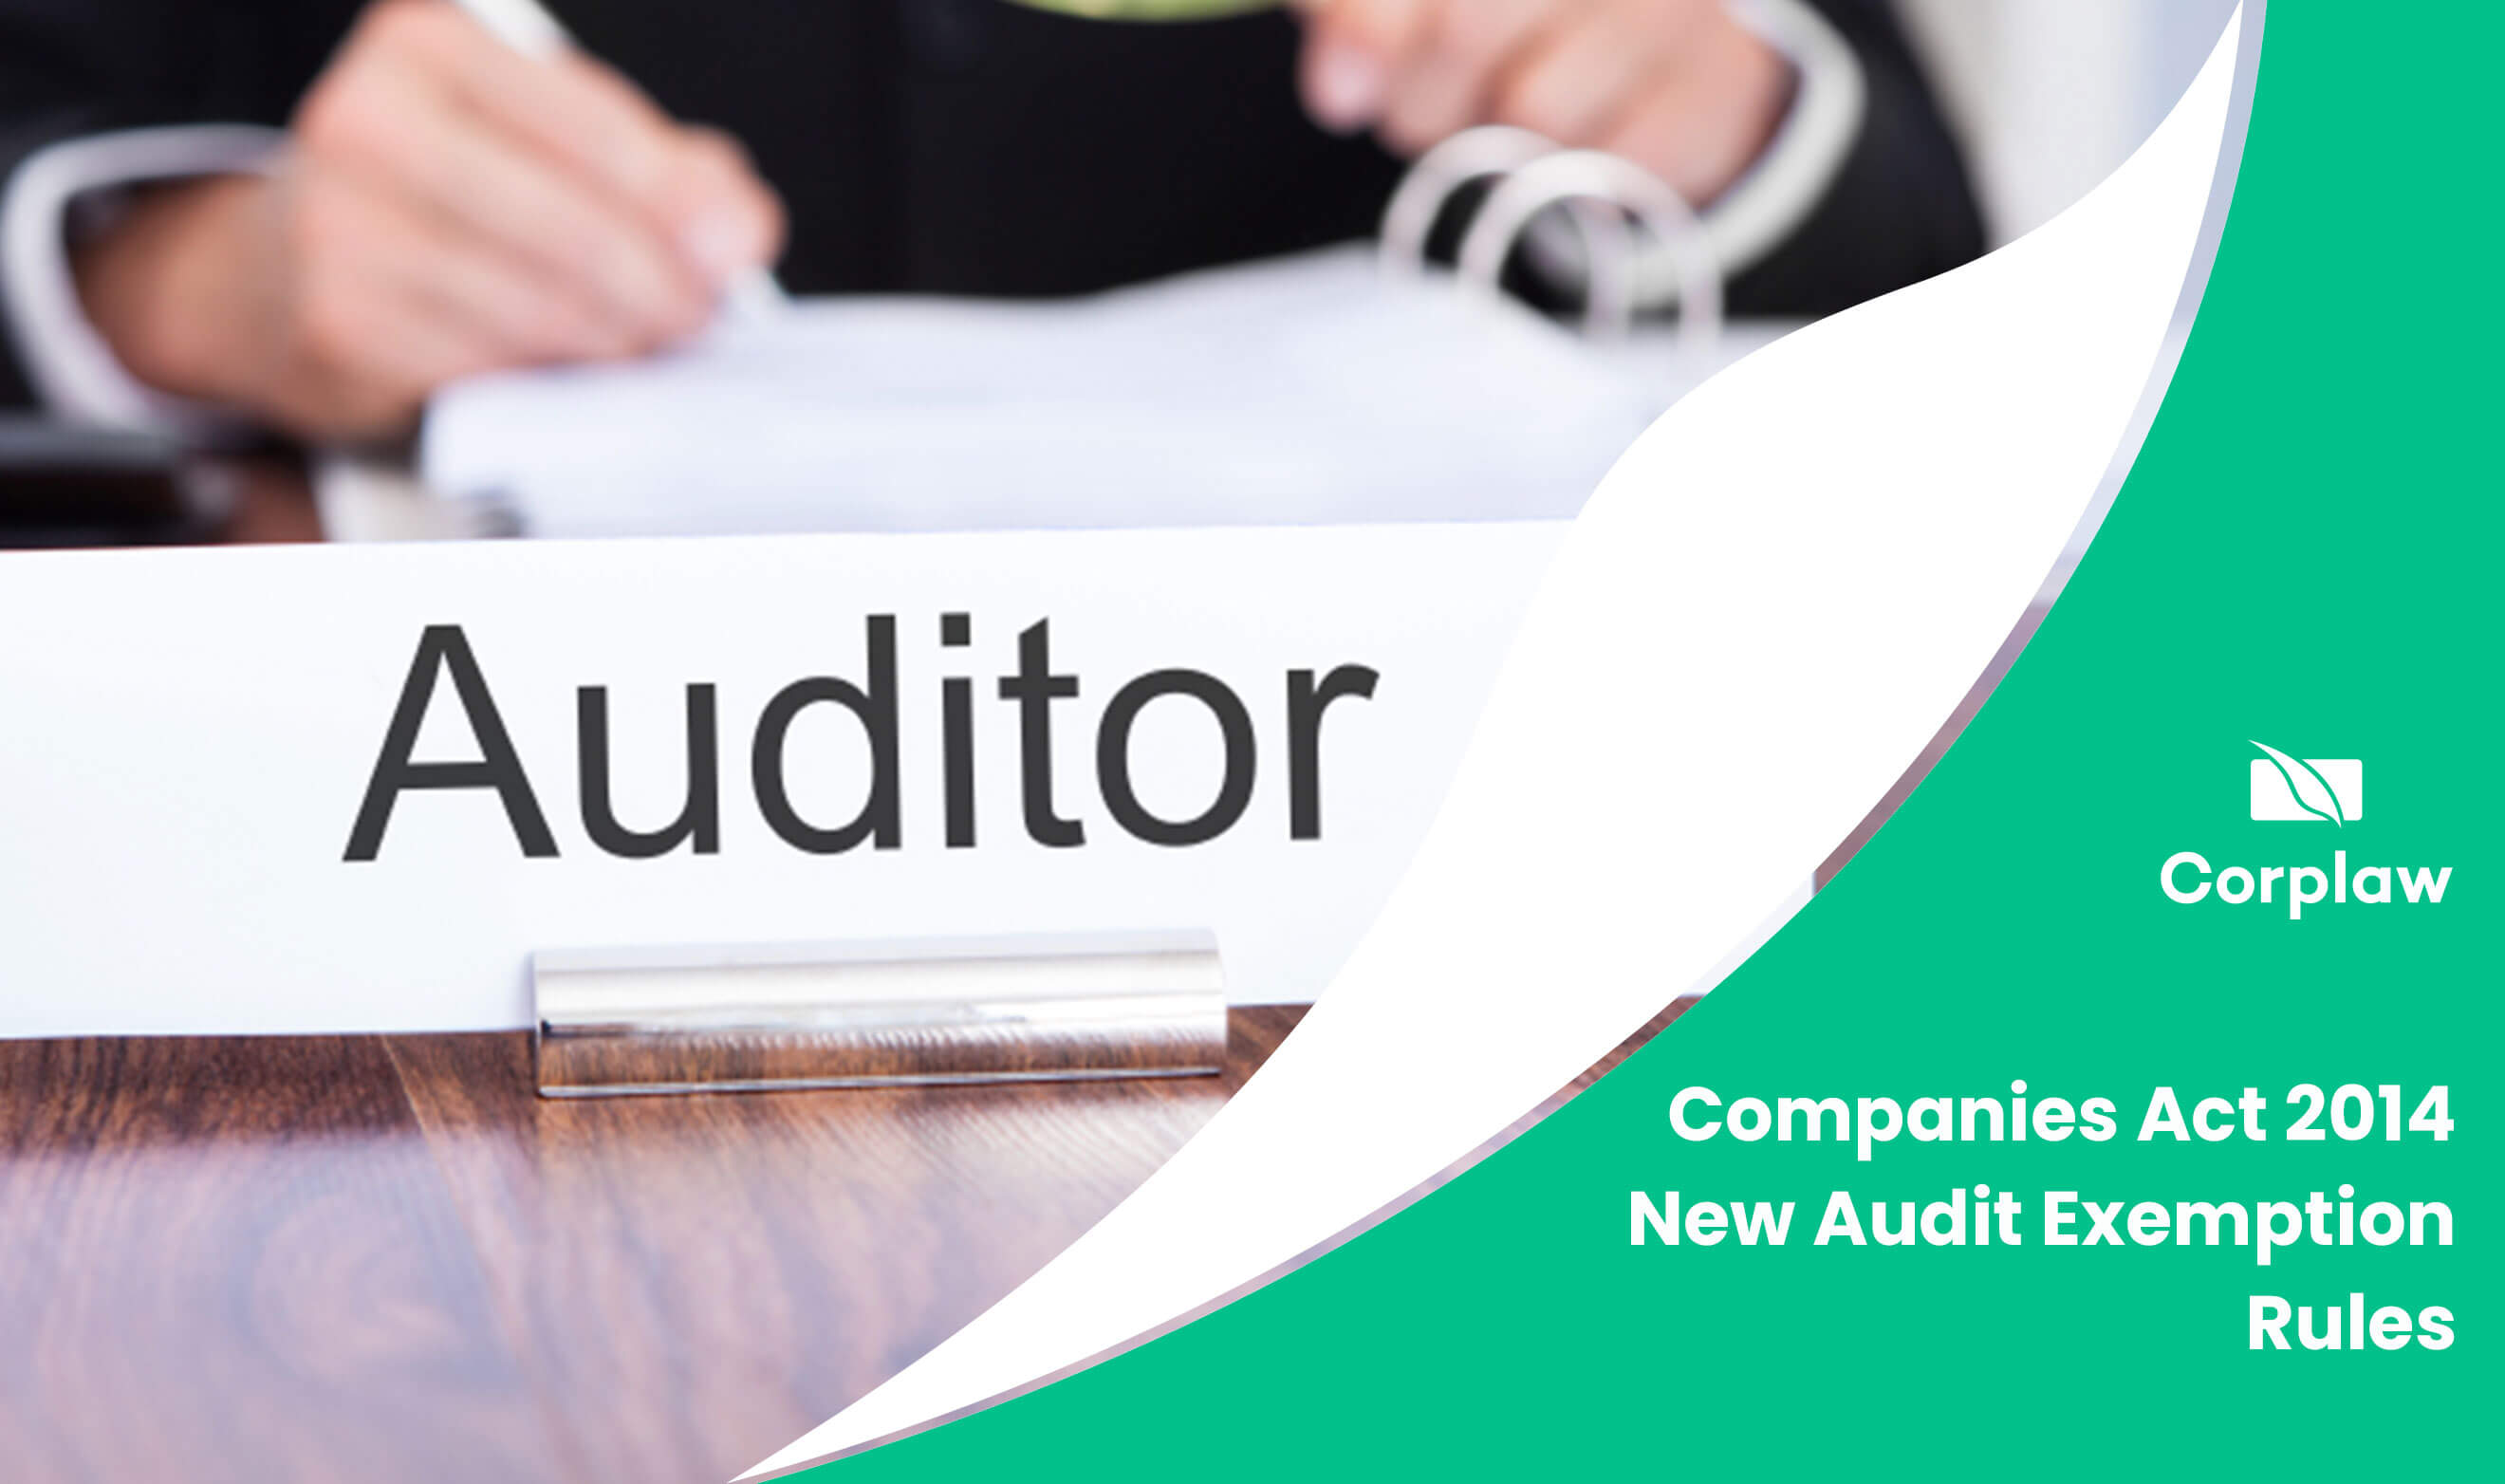 Corplaw-Blog-Companies-Act-2014-–-New-Audit-Exemption-Rules